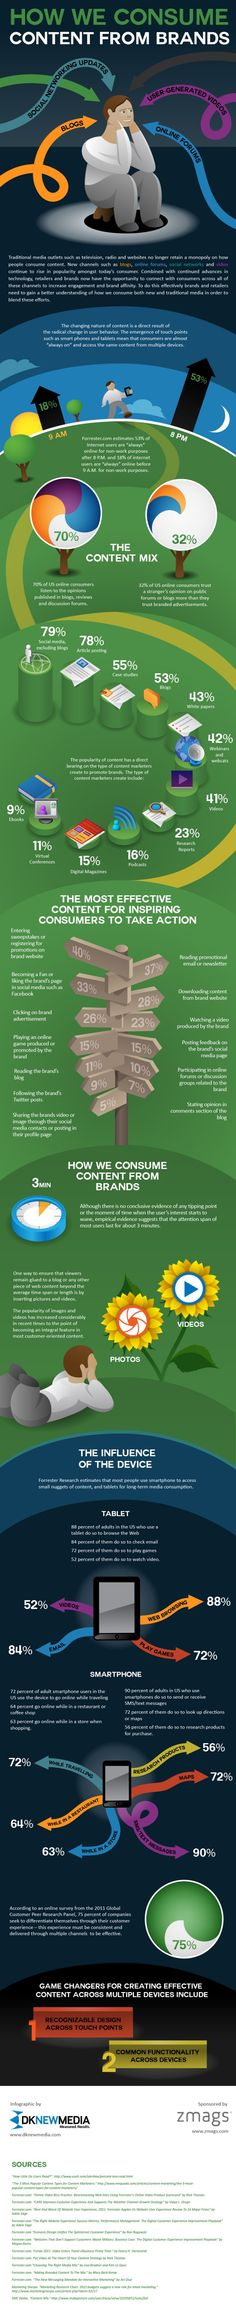 Zmags-How-We-Consume-Content-From-Brands-Infographic-640x6280